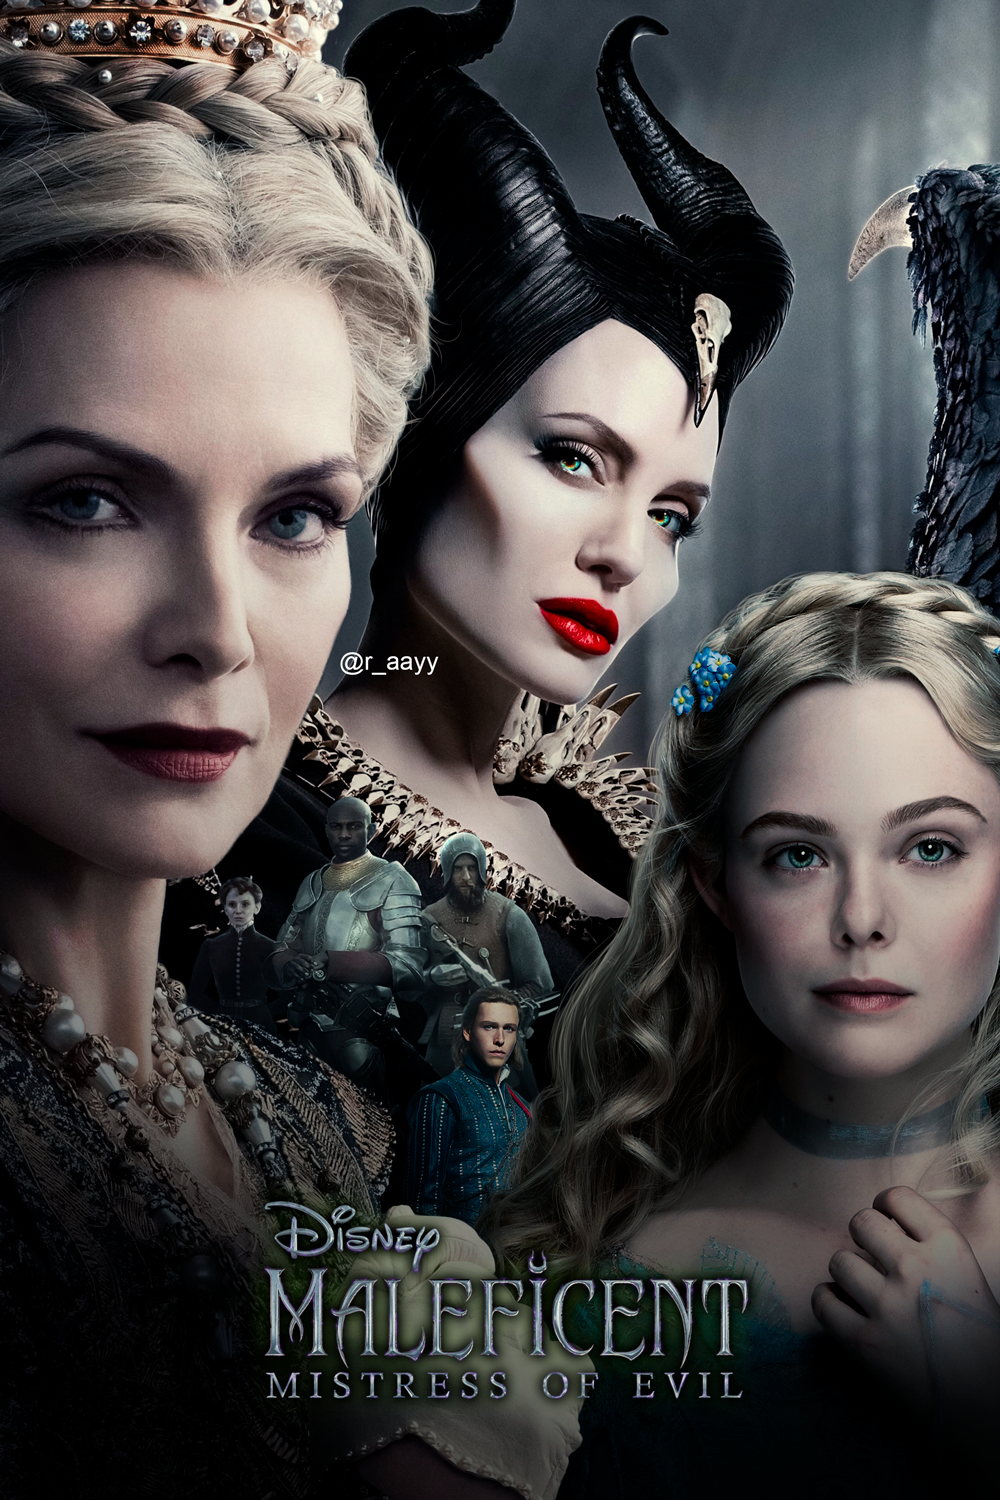 Maleficent Mistress Of Evil Poster Fanart By Raayb On